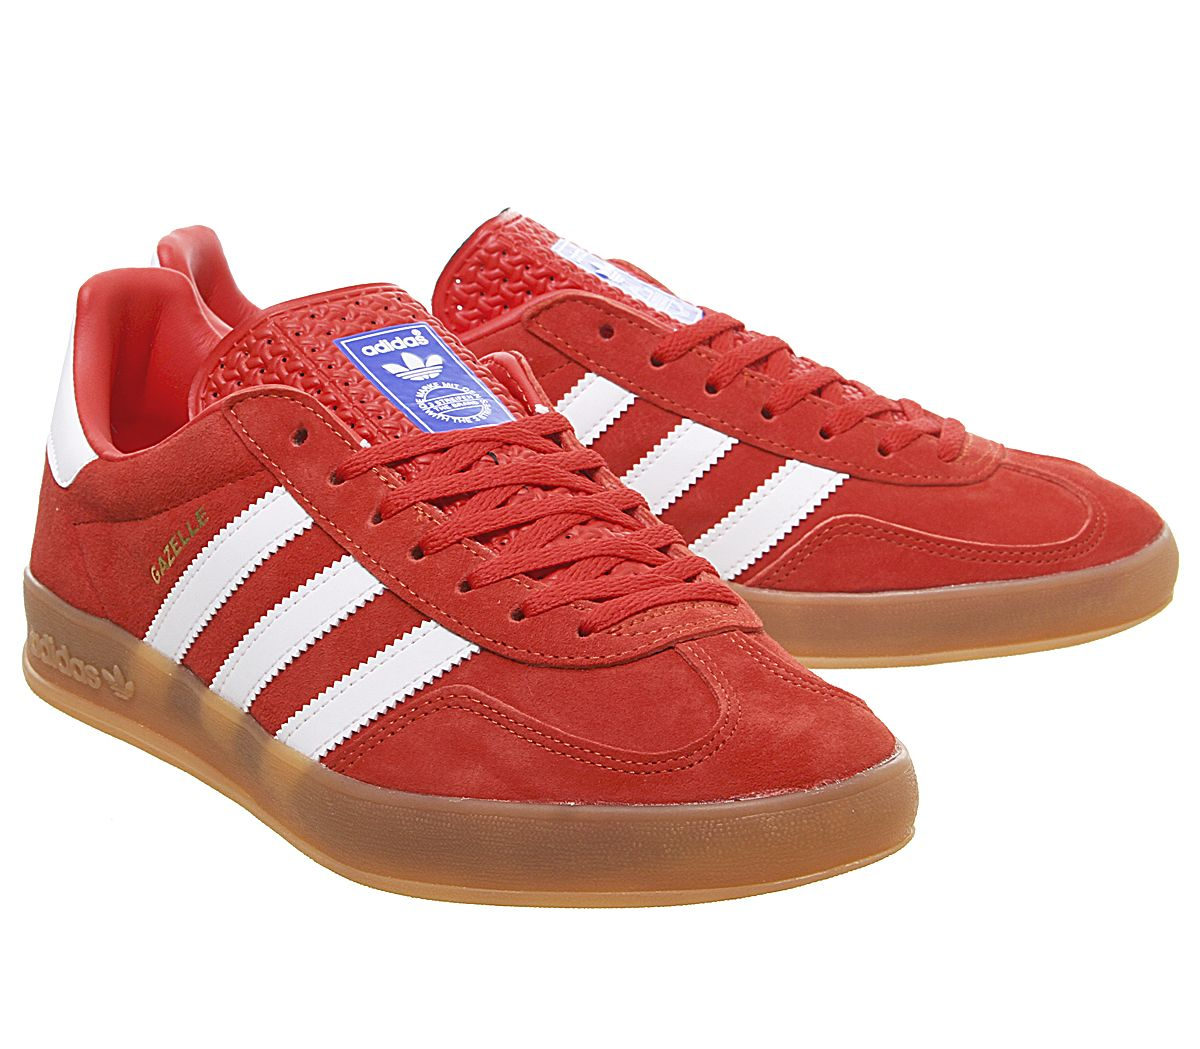 Active Red White Gum sole shoes